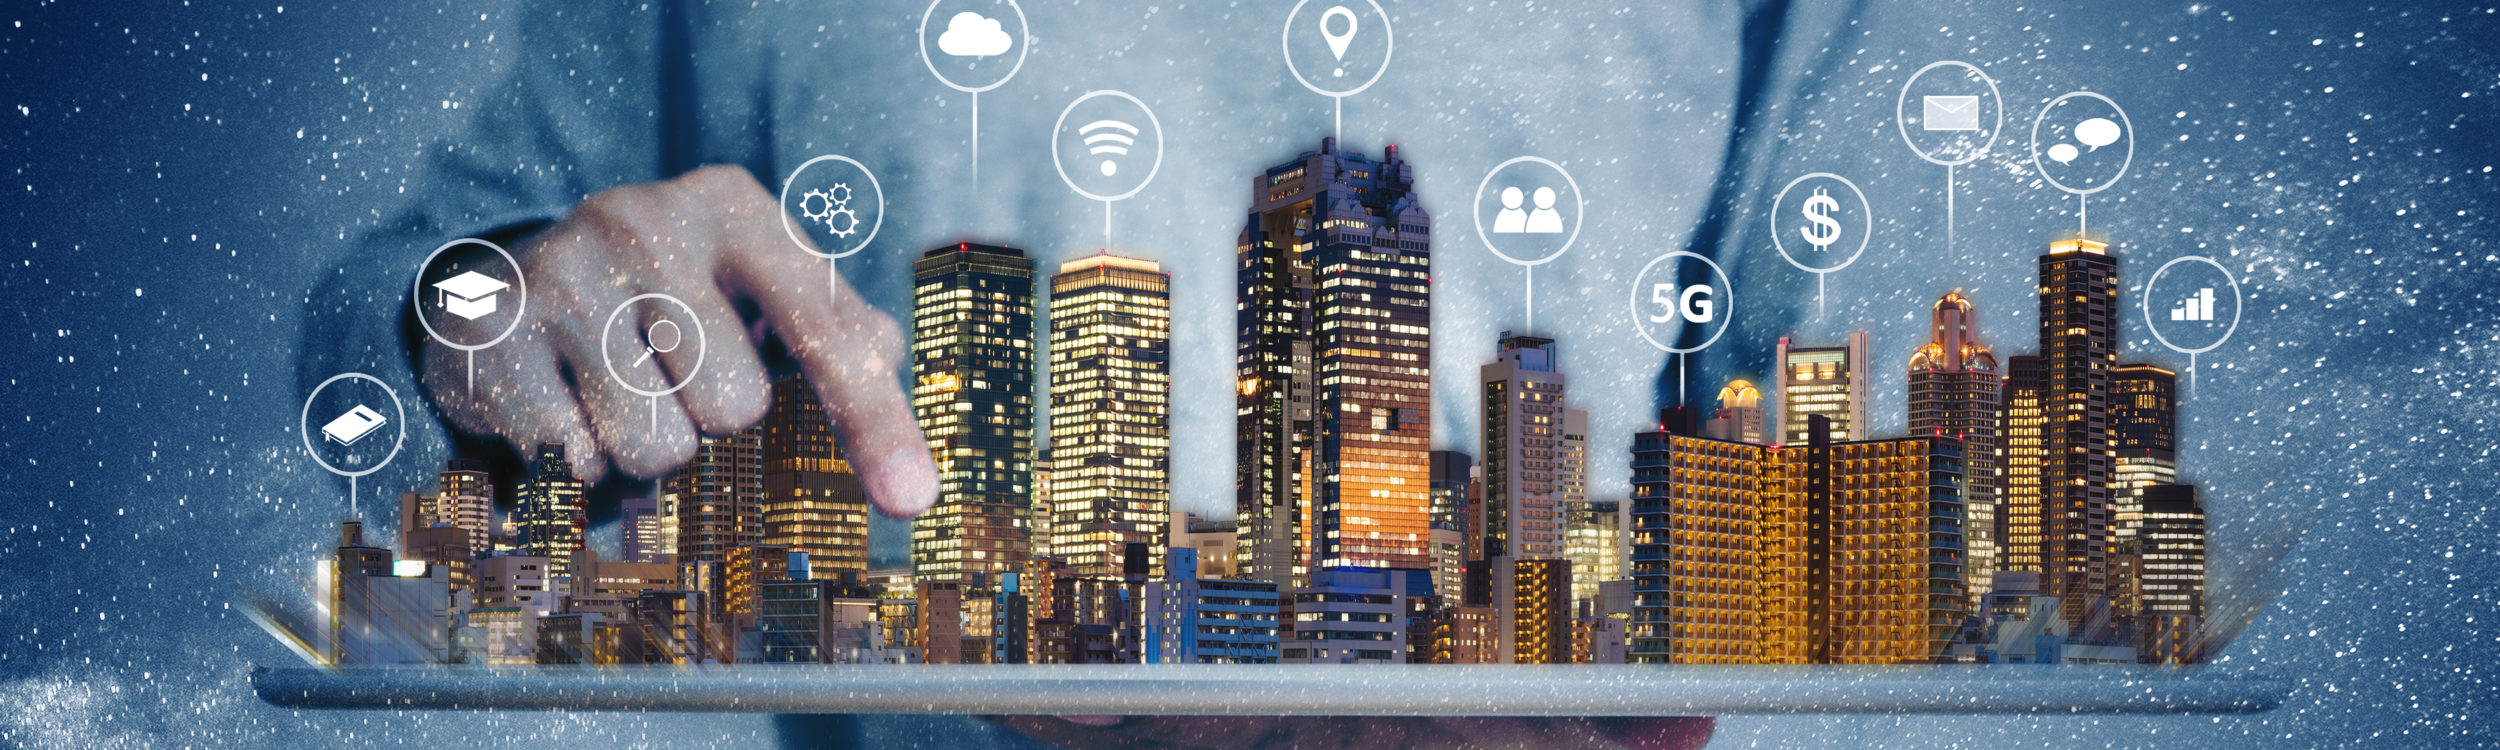 SAP for Real Estate to Manage Change More Effectively featured image